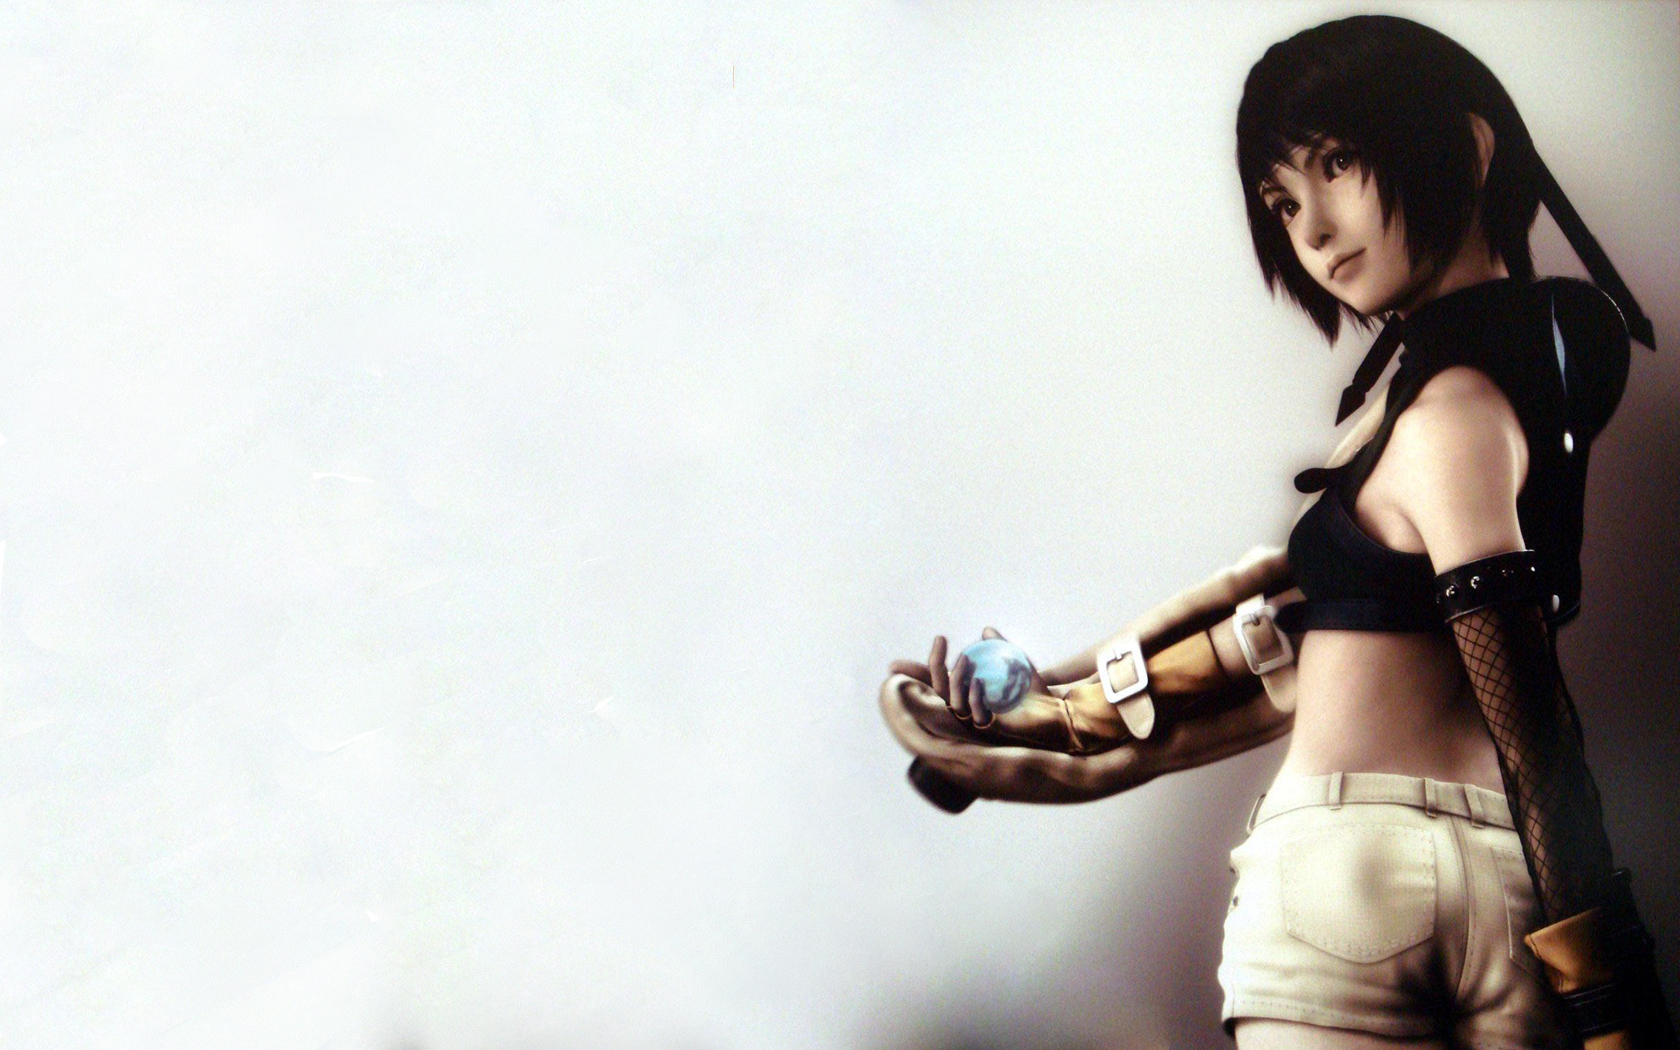 89 final fantasy vii advent children hd wallpapers backgrounds - Yuffie Wallpapers 44 Wallpapers